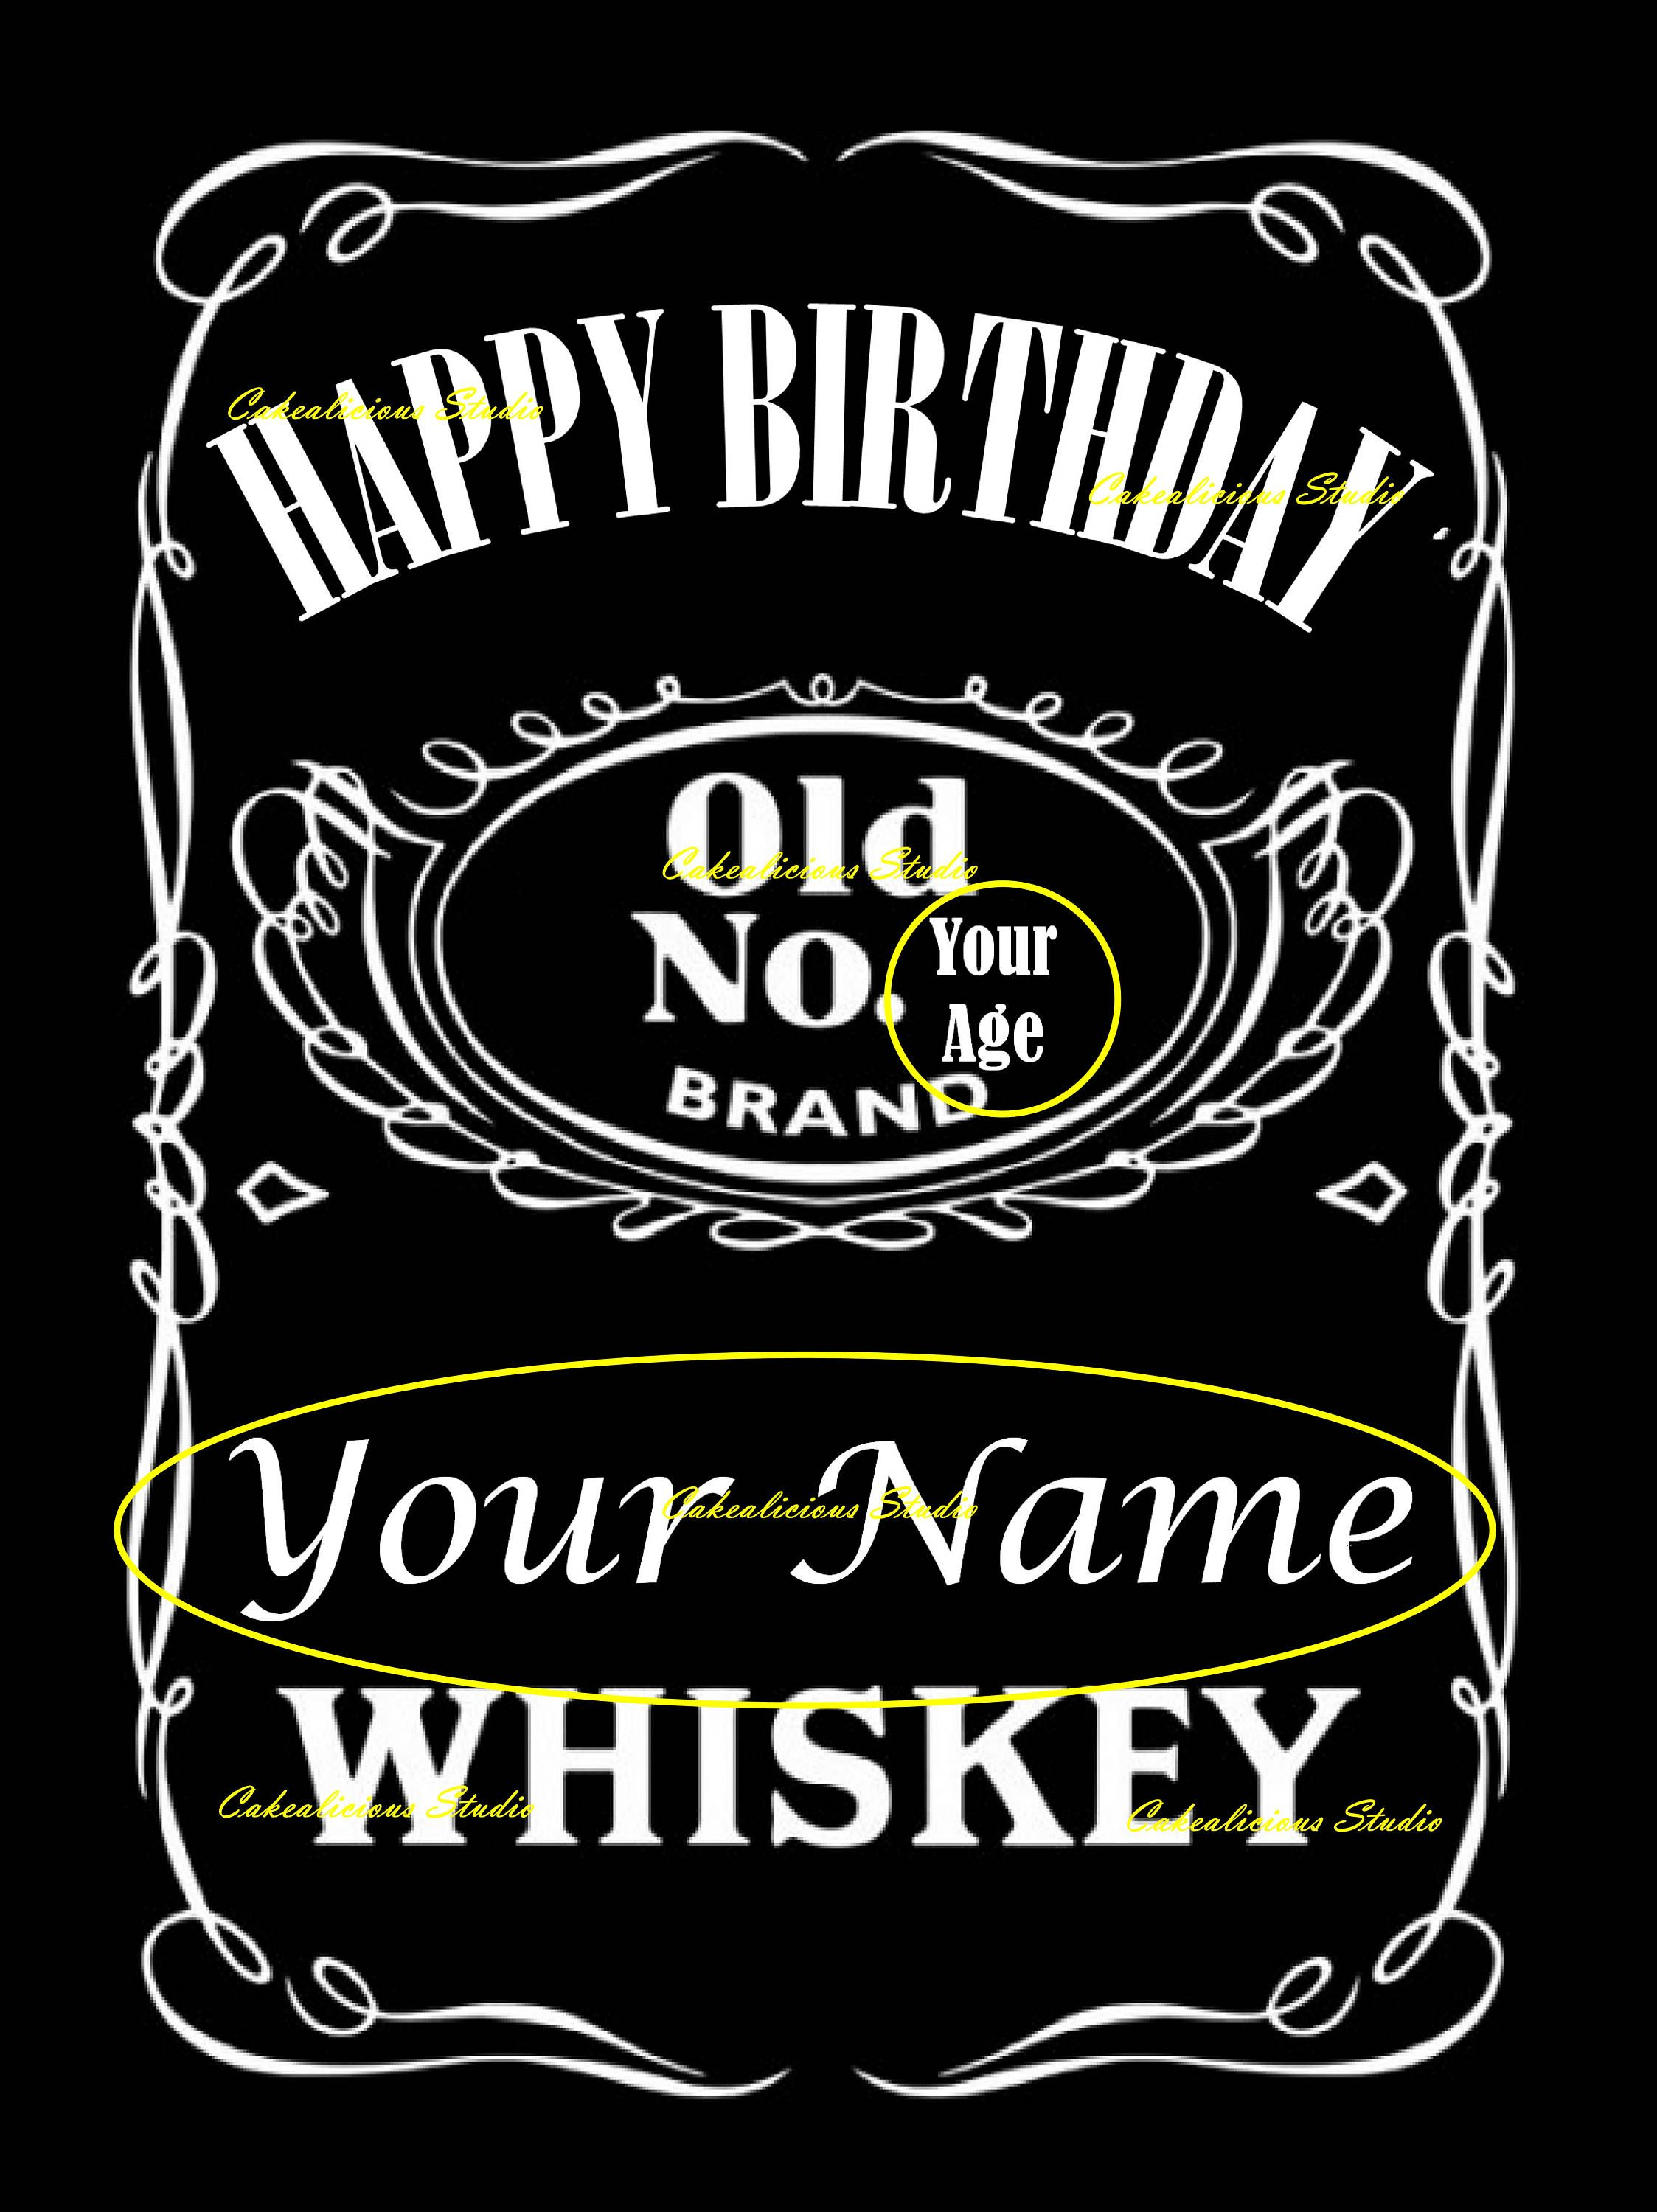 Personalized Happy Birthday Jack Daniels Whiskey Edible Icing